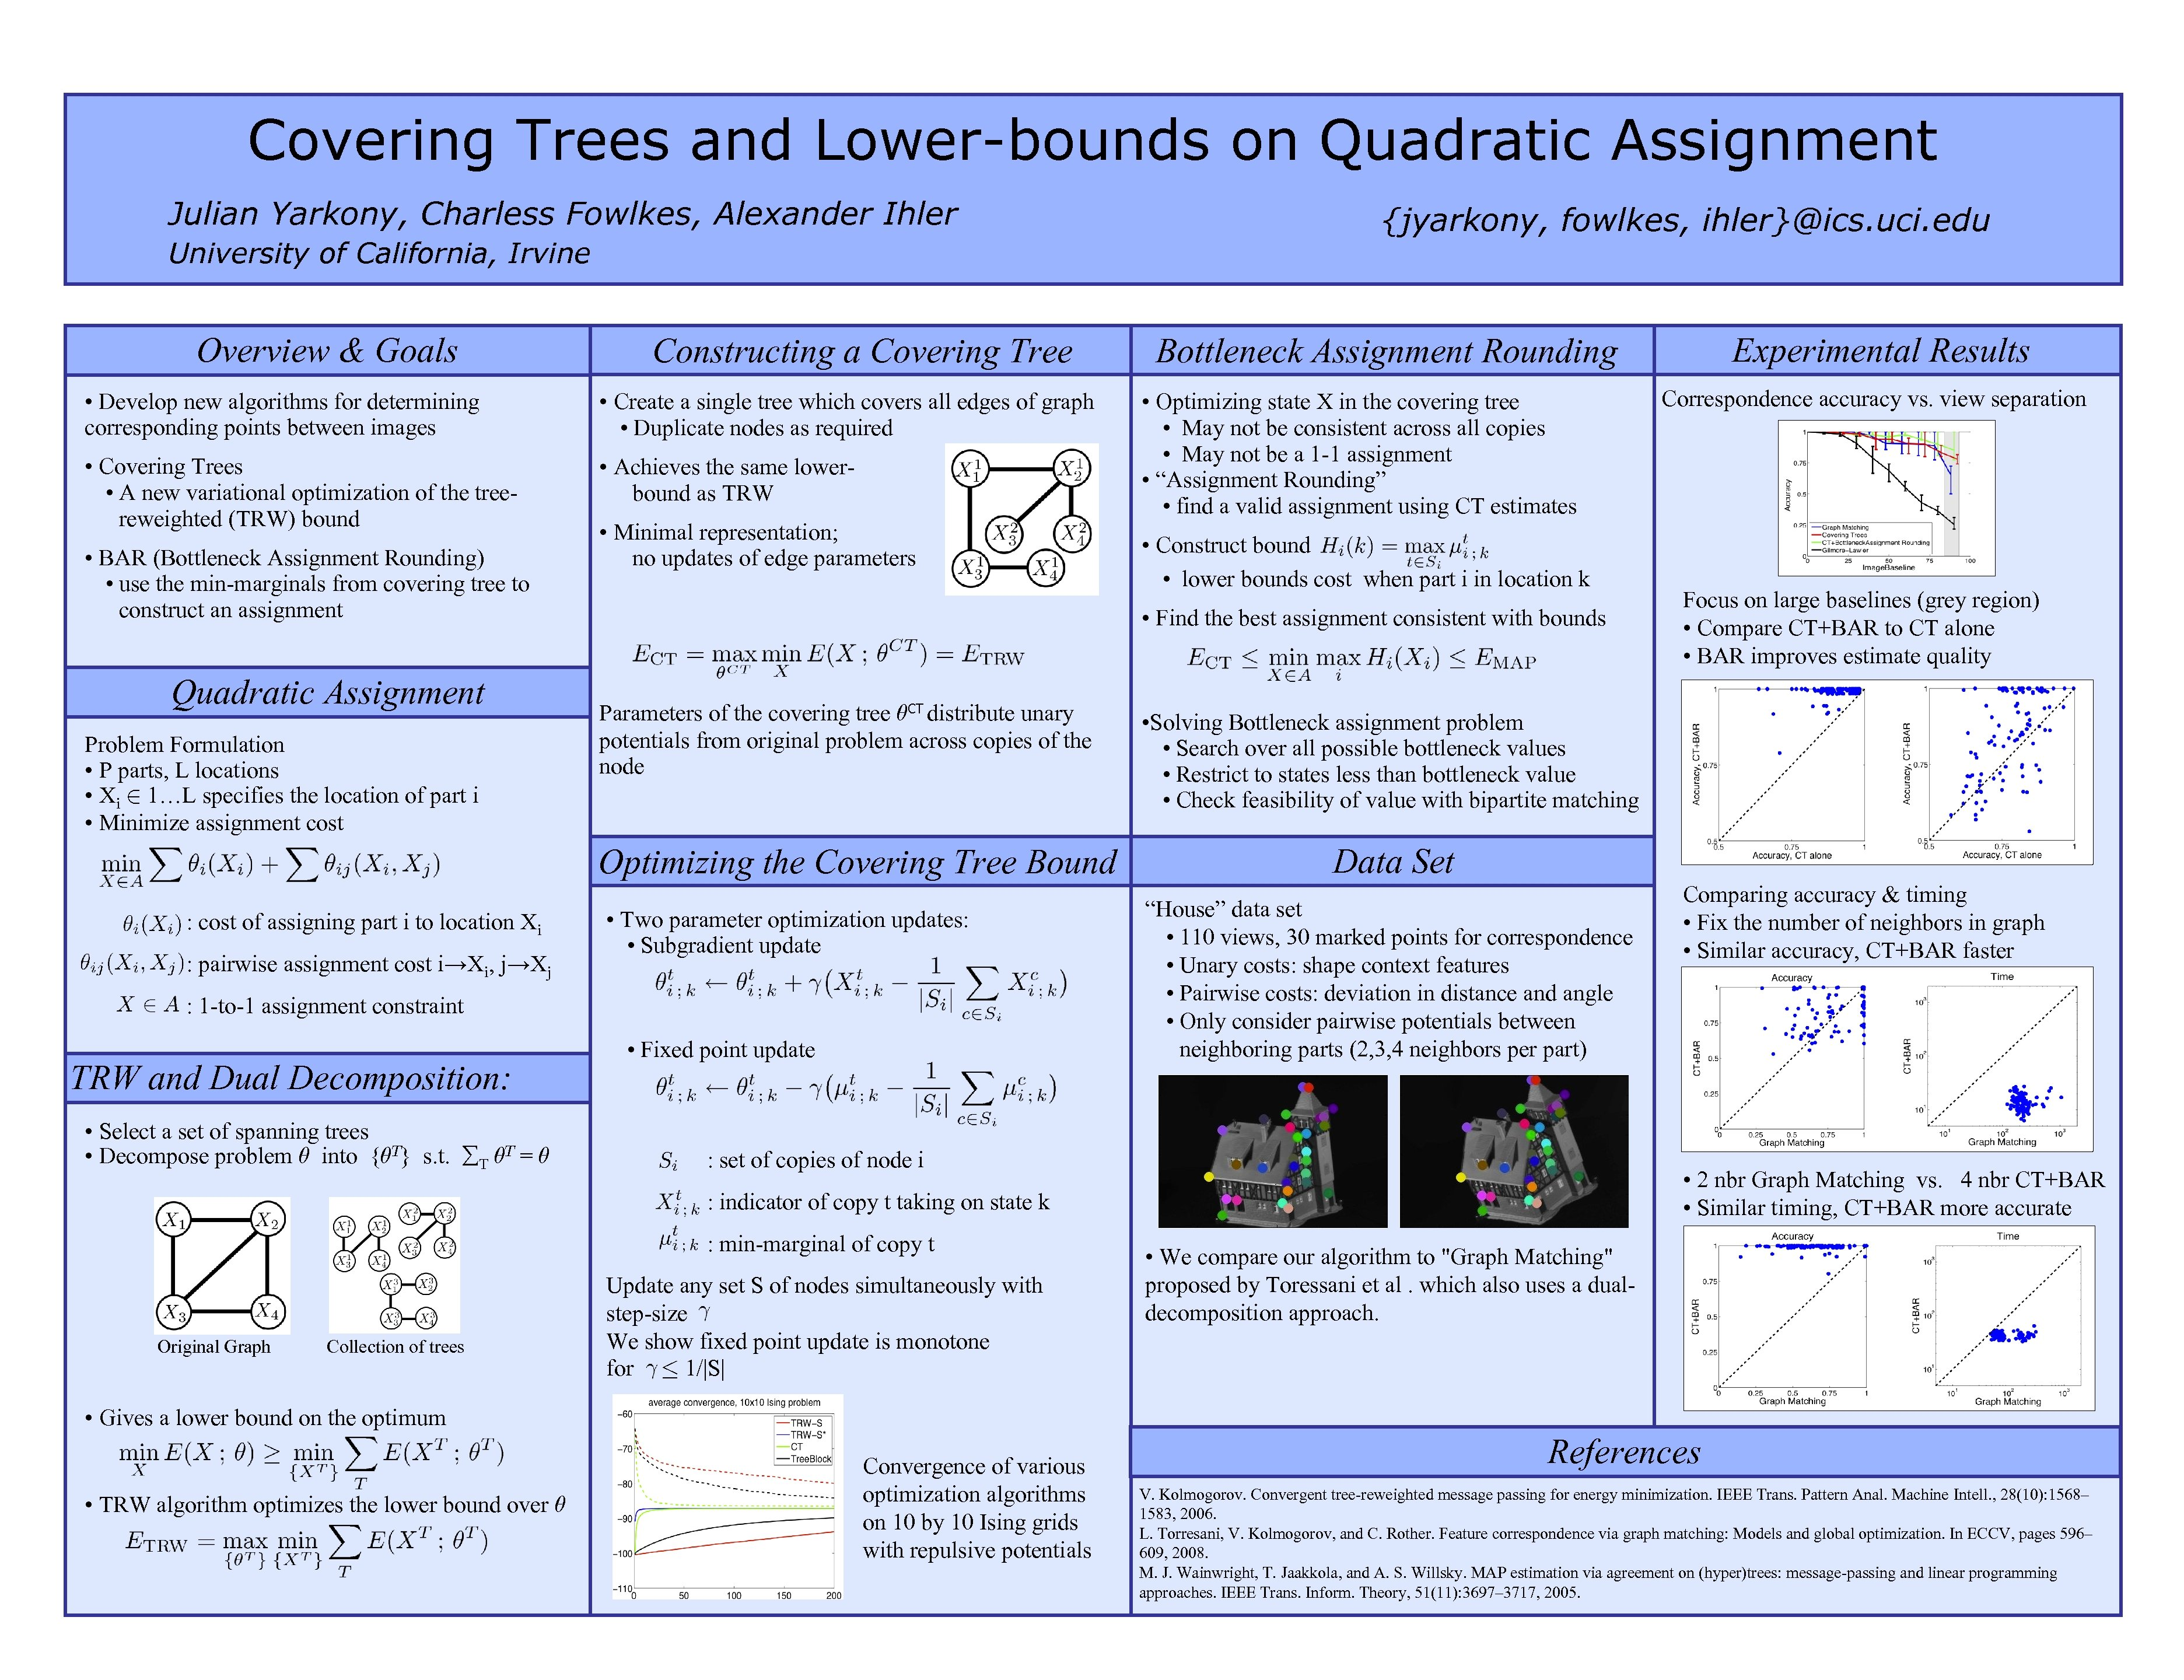 Covering Trees and Lower-bounds on Quadratic Assignment Julian Yarkony, Charless Fowlkes, Alexander Ihler University